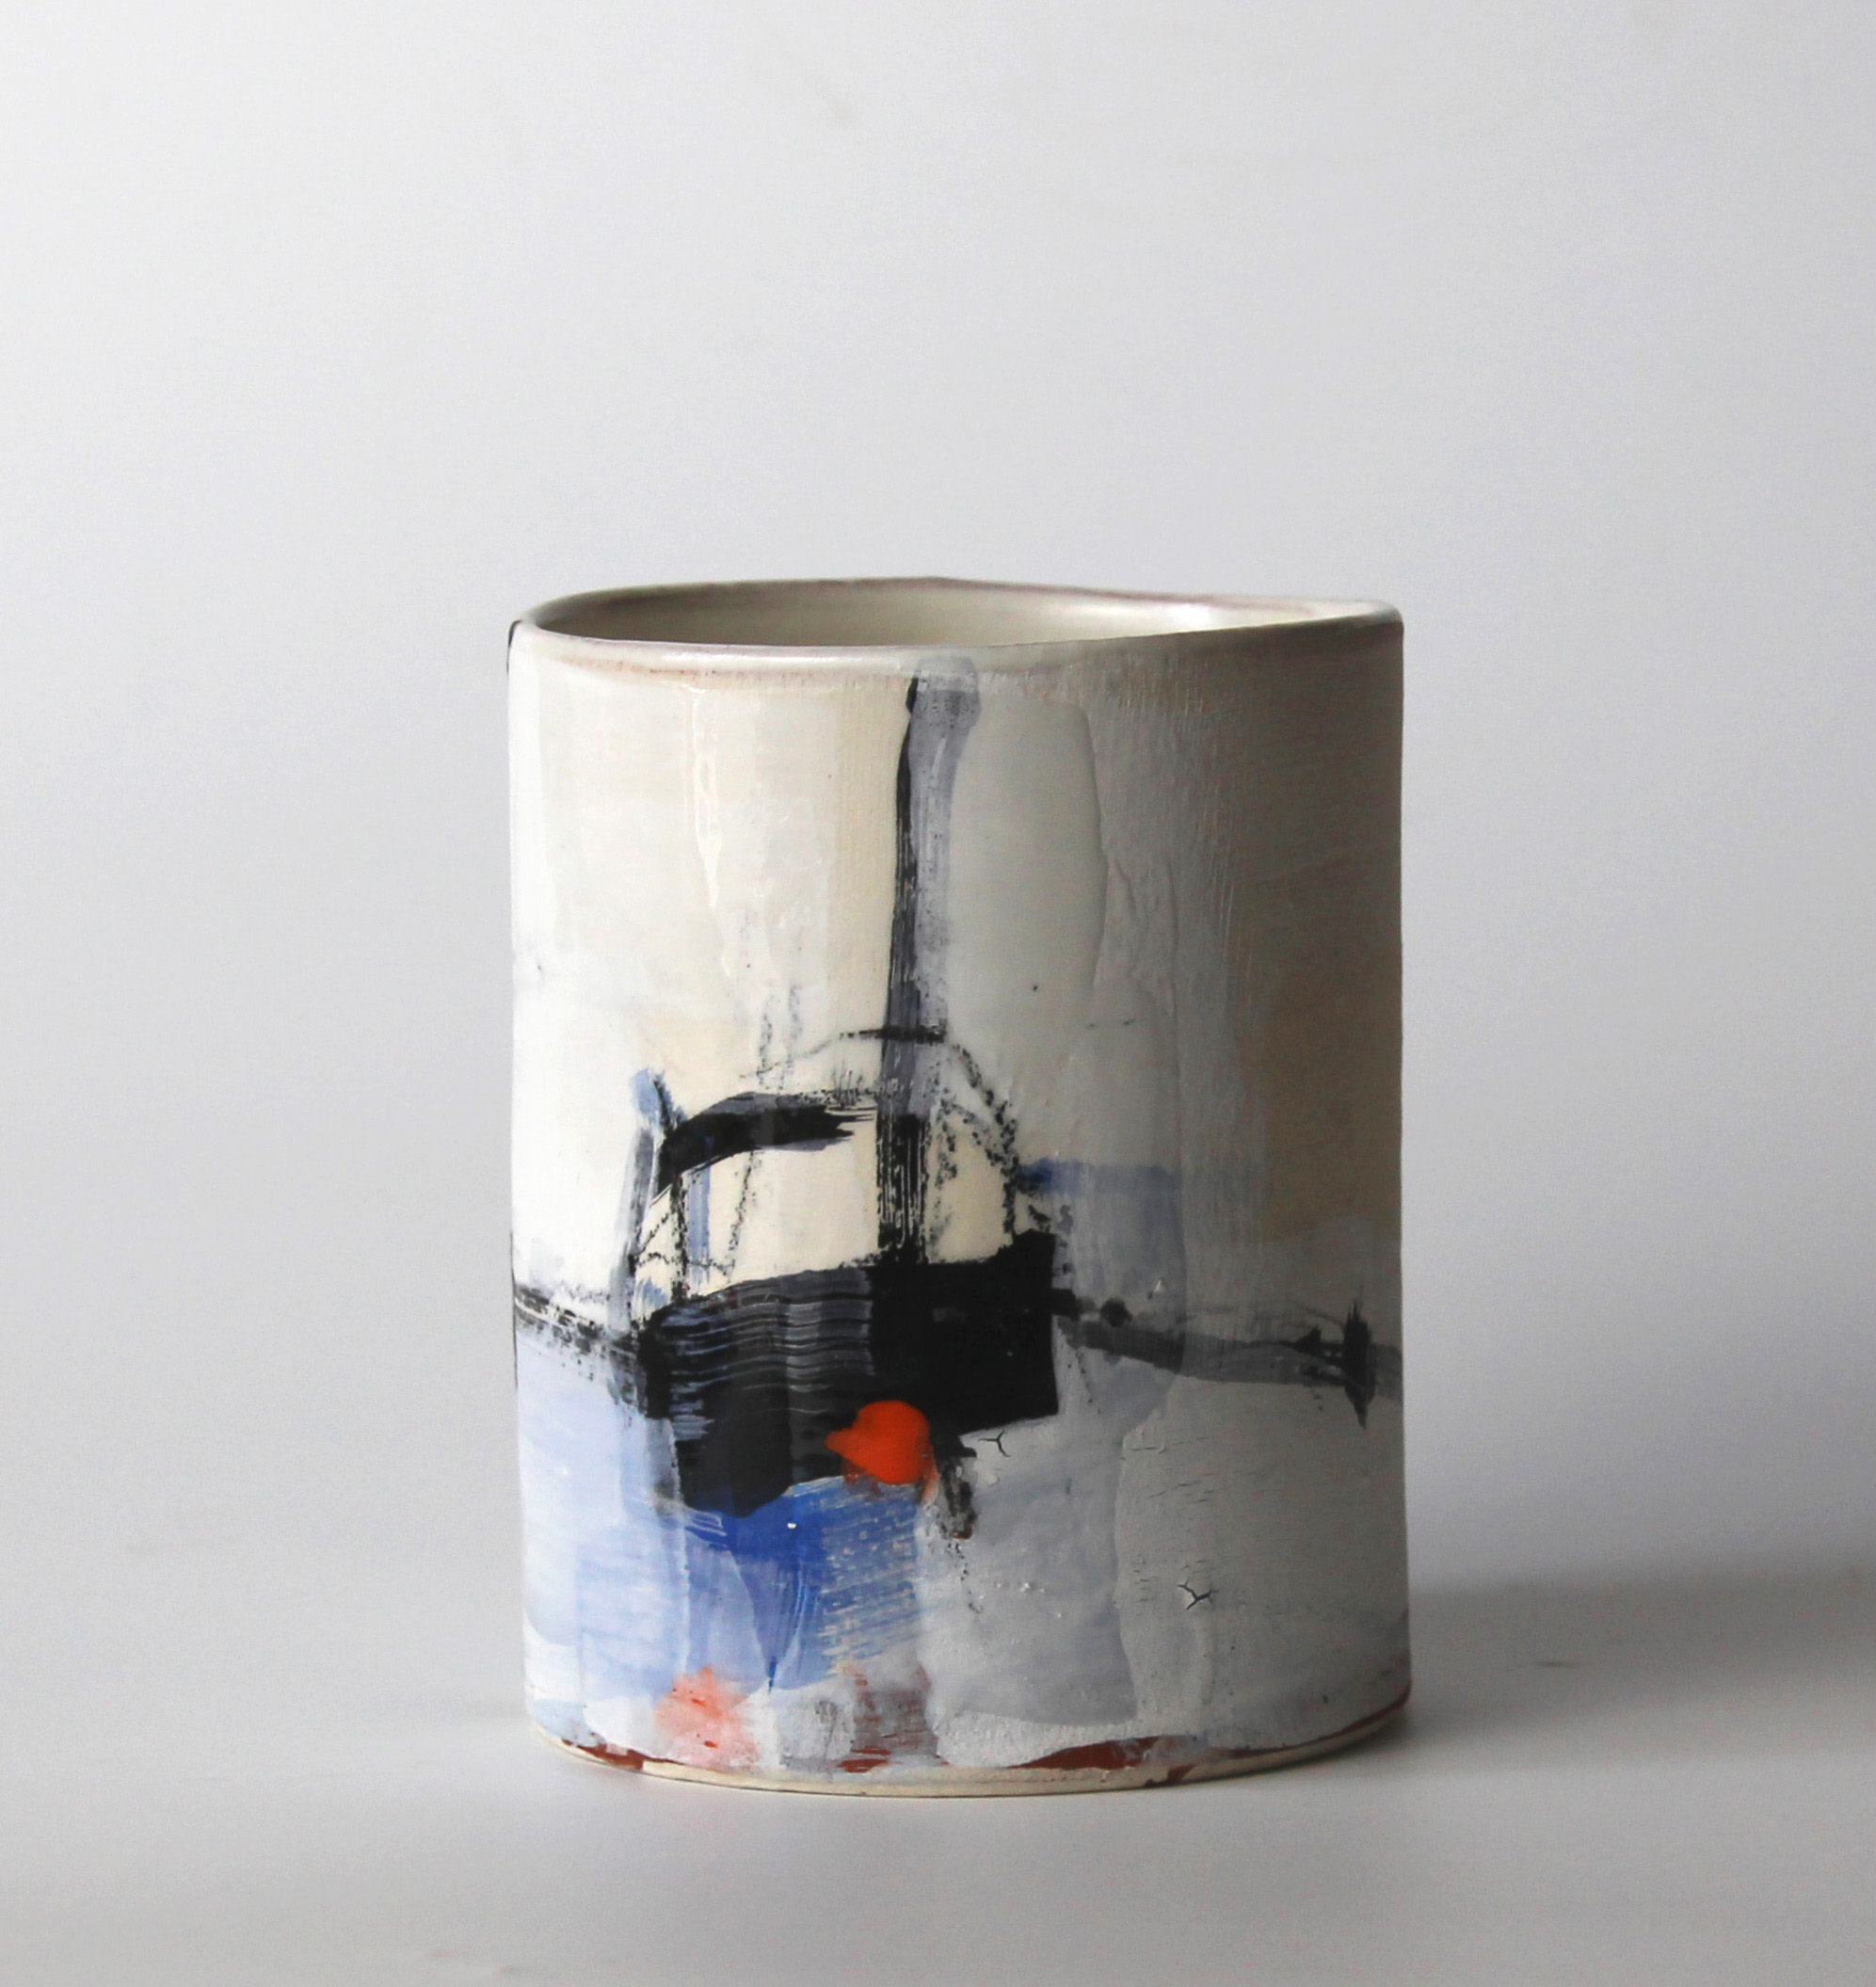 "<span class=""link fancybox-details-link""><a href=""/artists/34-barry-stedman/works/4148-barry-stedman-thrown-vessel-harbour-ii-series-2017/"">View Detail Page</a></span><div class=""artist""><strong>Barry Stedman</strong></div> <div class=""title""><em>Thrown Vessel 'Harbour II' Series</em>, 2017</div> <div class=""signed_and_dated"">signed by artist</div> <div class=""medium"">earthenware</div> <div class=""dimensions"">11.5 x 9.5 cm<br /> 4 1/2 x 3 3/4 inches</div><div class=""copyright_line"">OwnArt: £ 21 x 10 Months, 0% APR</div>"